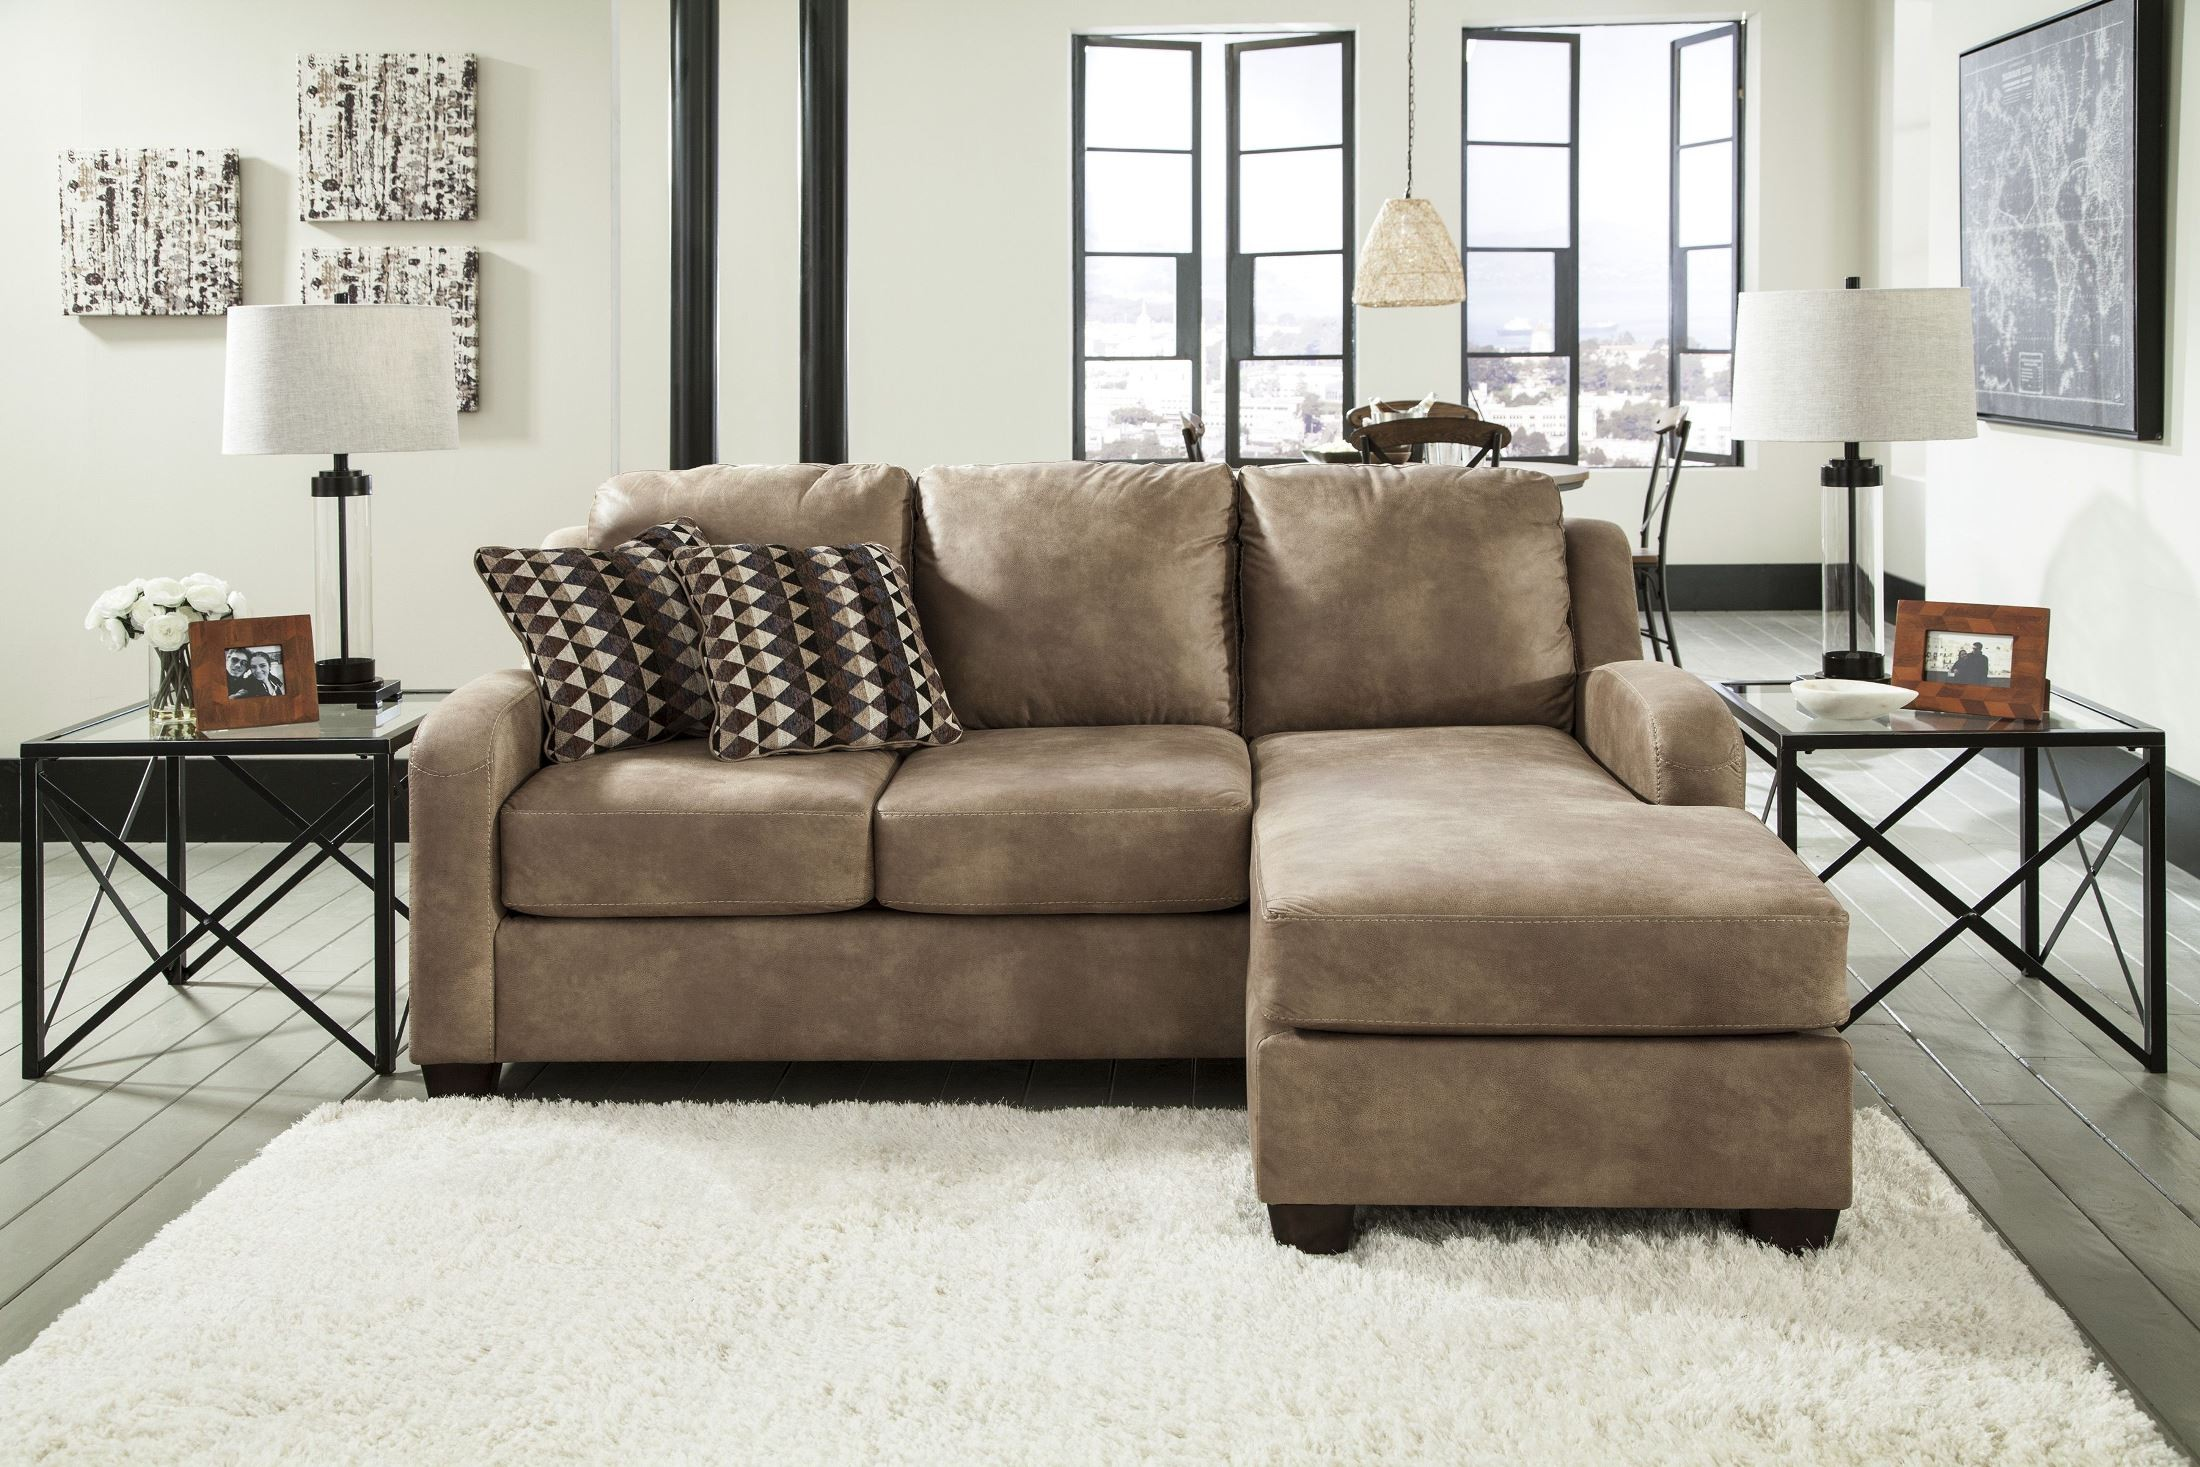 Alturo dune sofa chaise from ashley 6000318 coleman for Ashley chaise lounge recliner